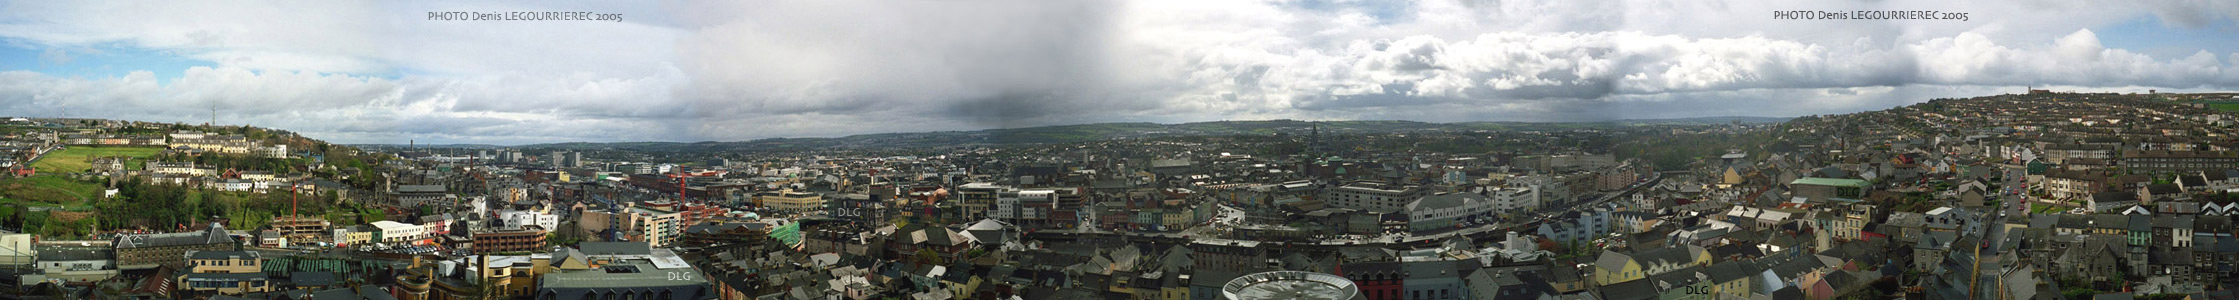 cork panorama shandon church